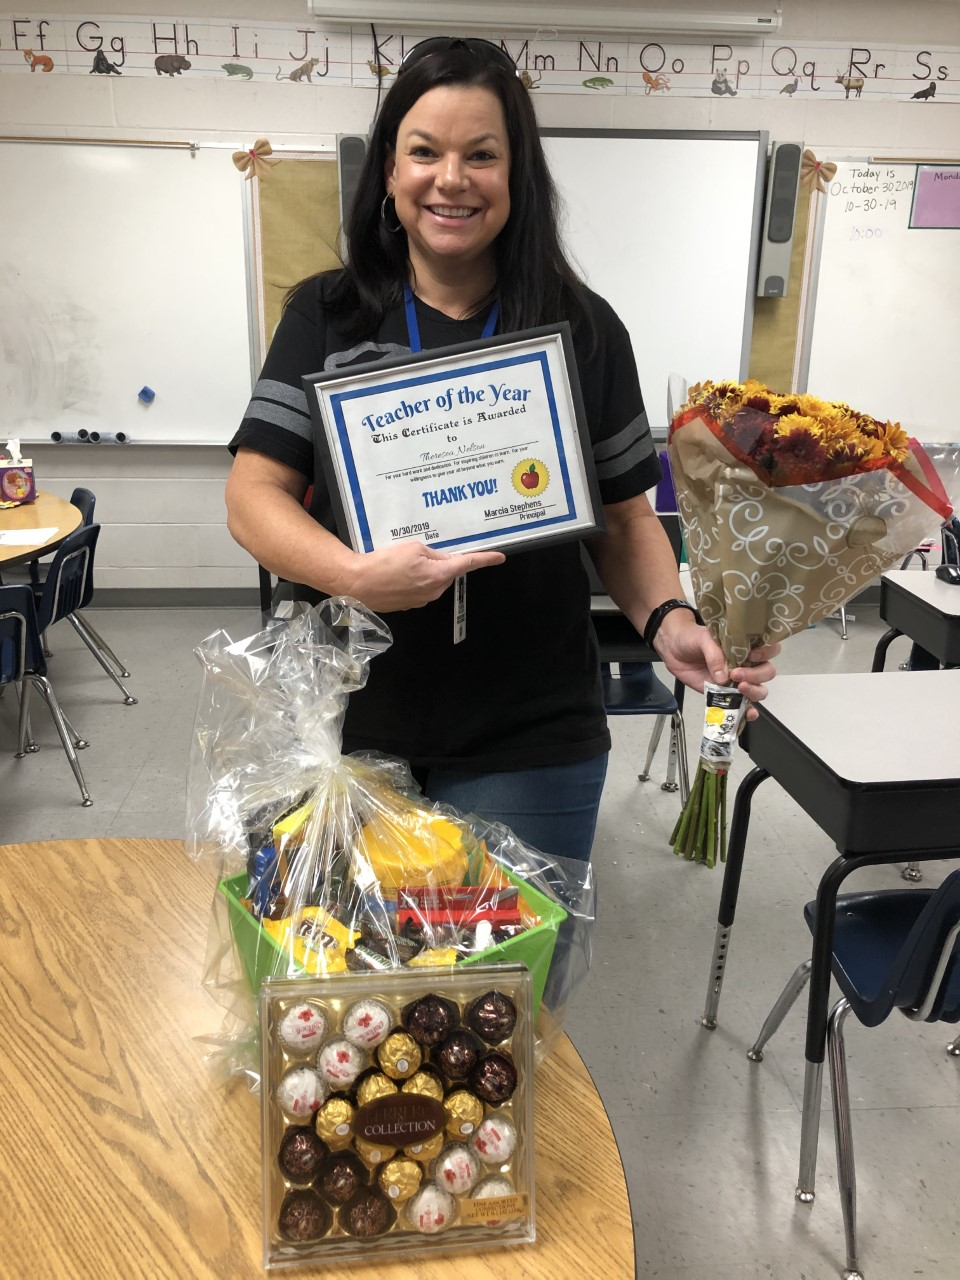 Theresa Nelson honored as Teacher of the Year